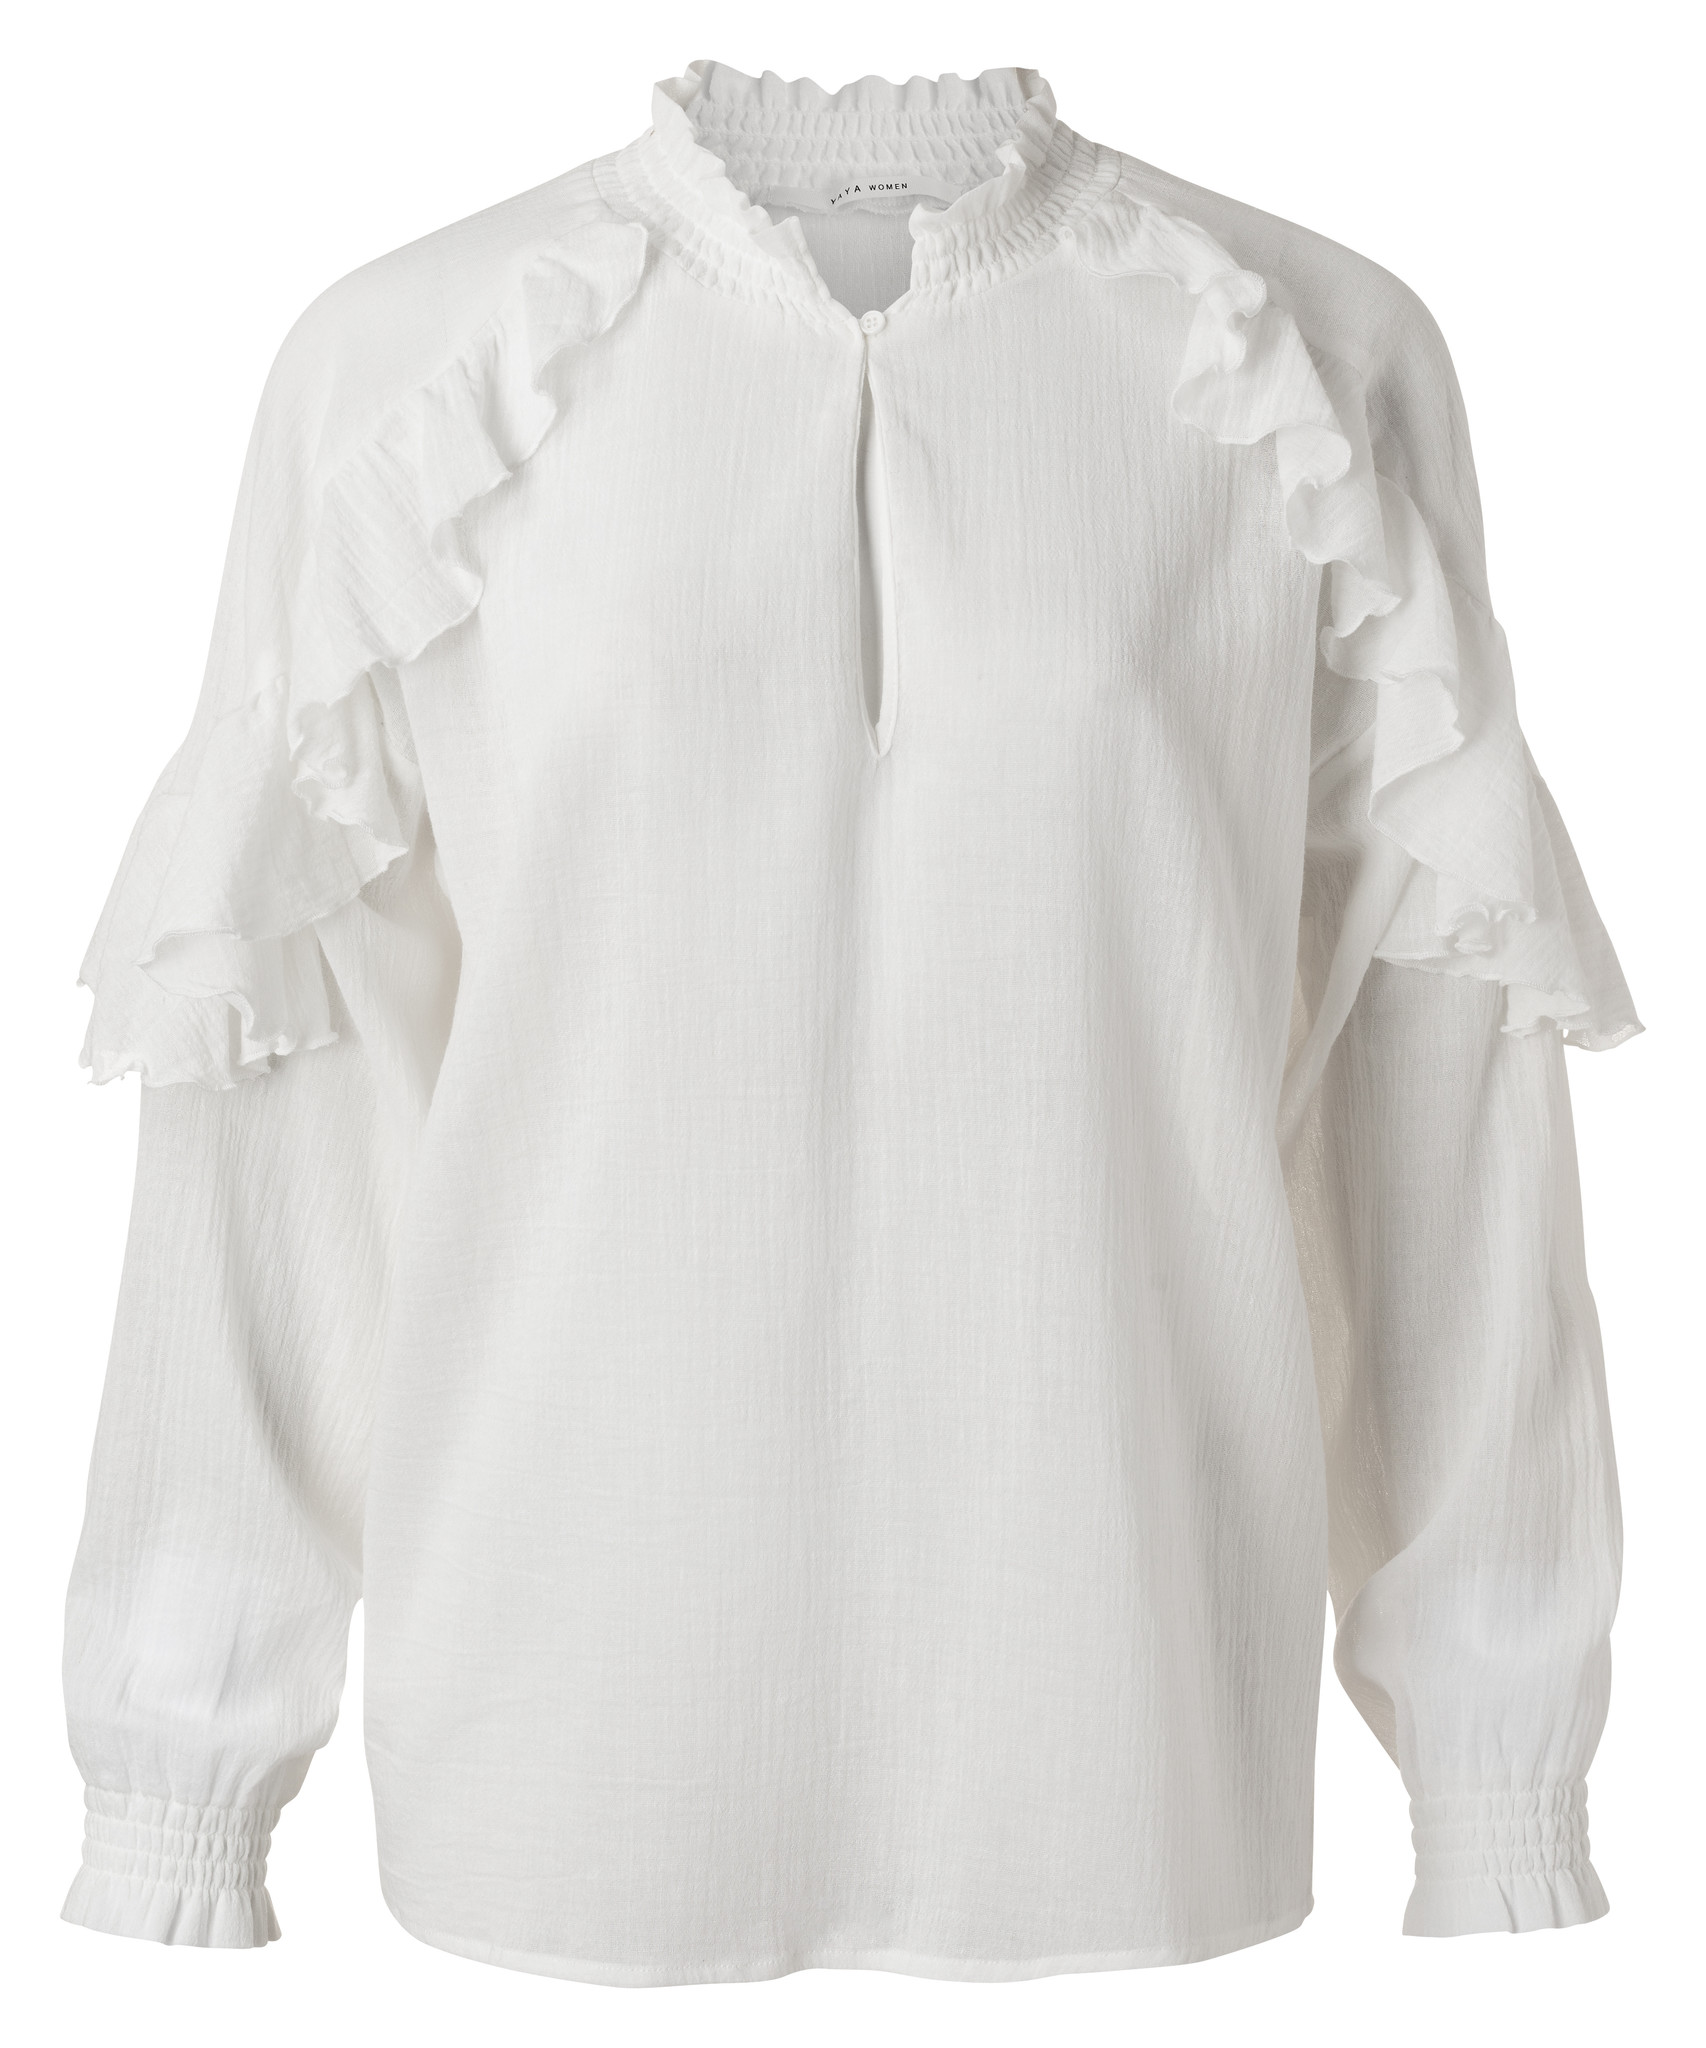 yaya Top with ruffles 1901410-113-1